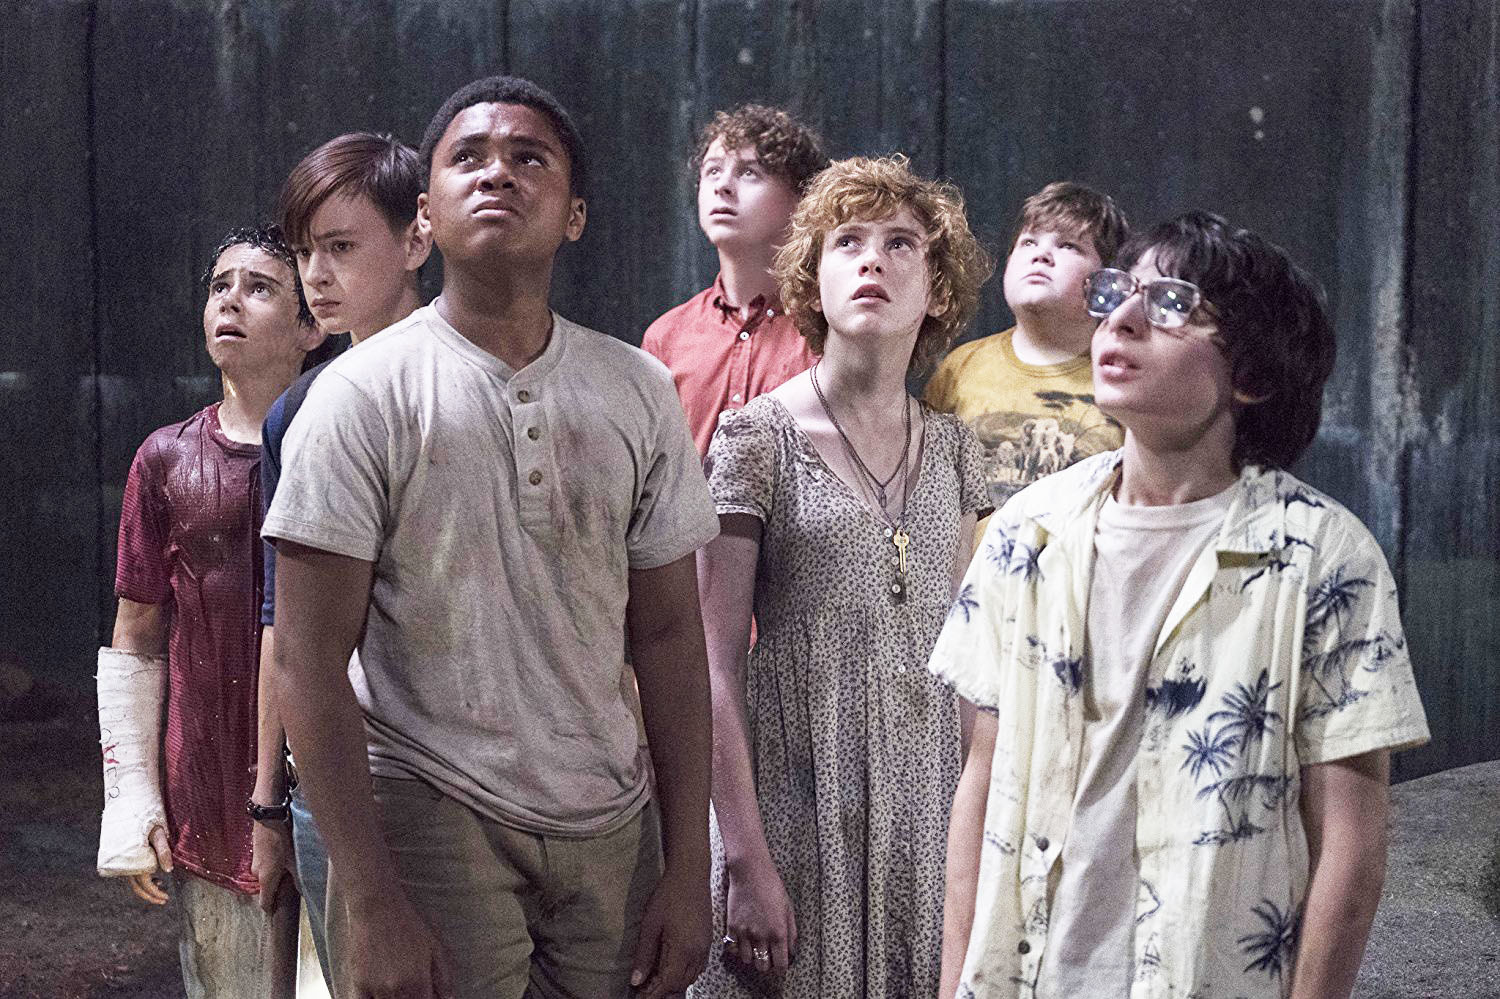 The cast of IT